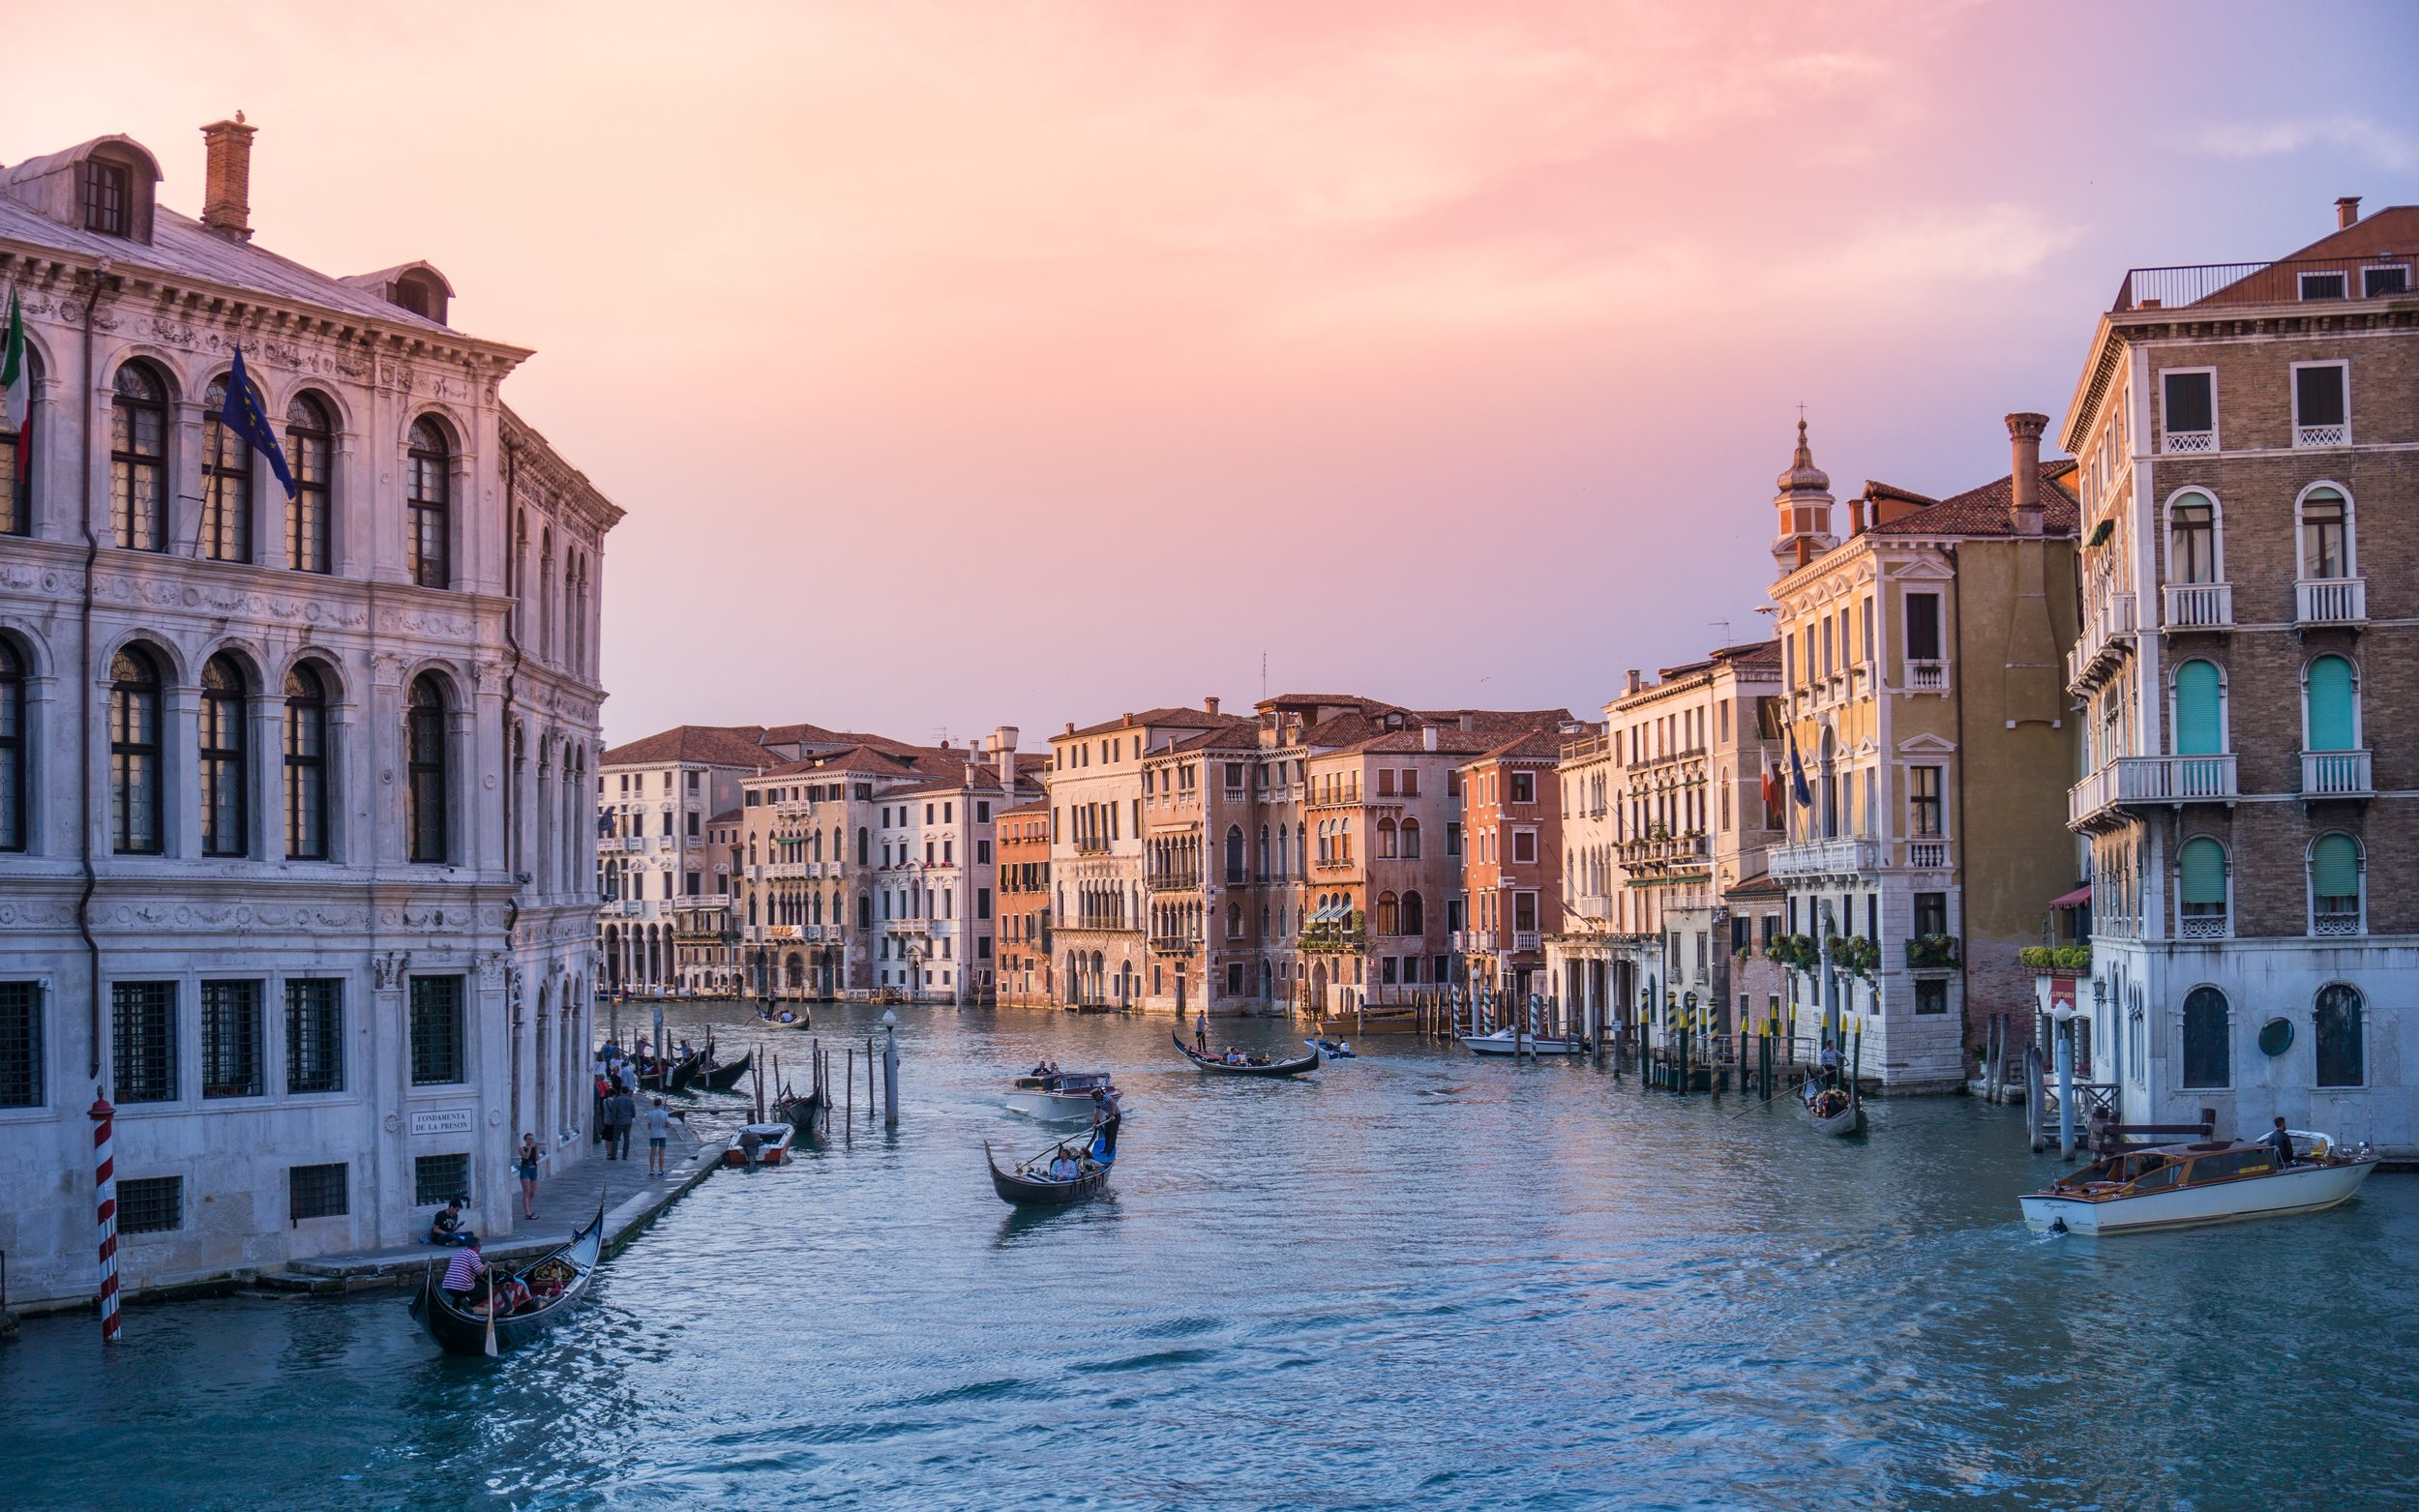 Work In Italy Without A Visa - Work (and get paid!) in the land of pizza and pasta – it's easy, legal, and you'll have the time of your life.